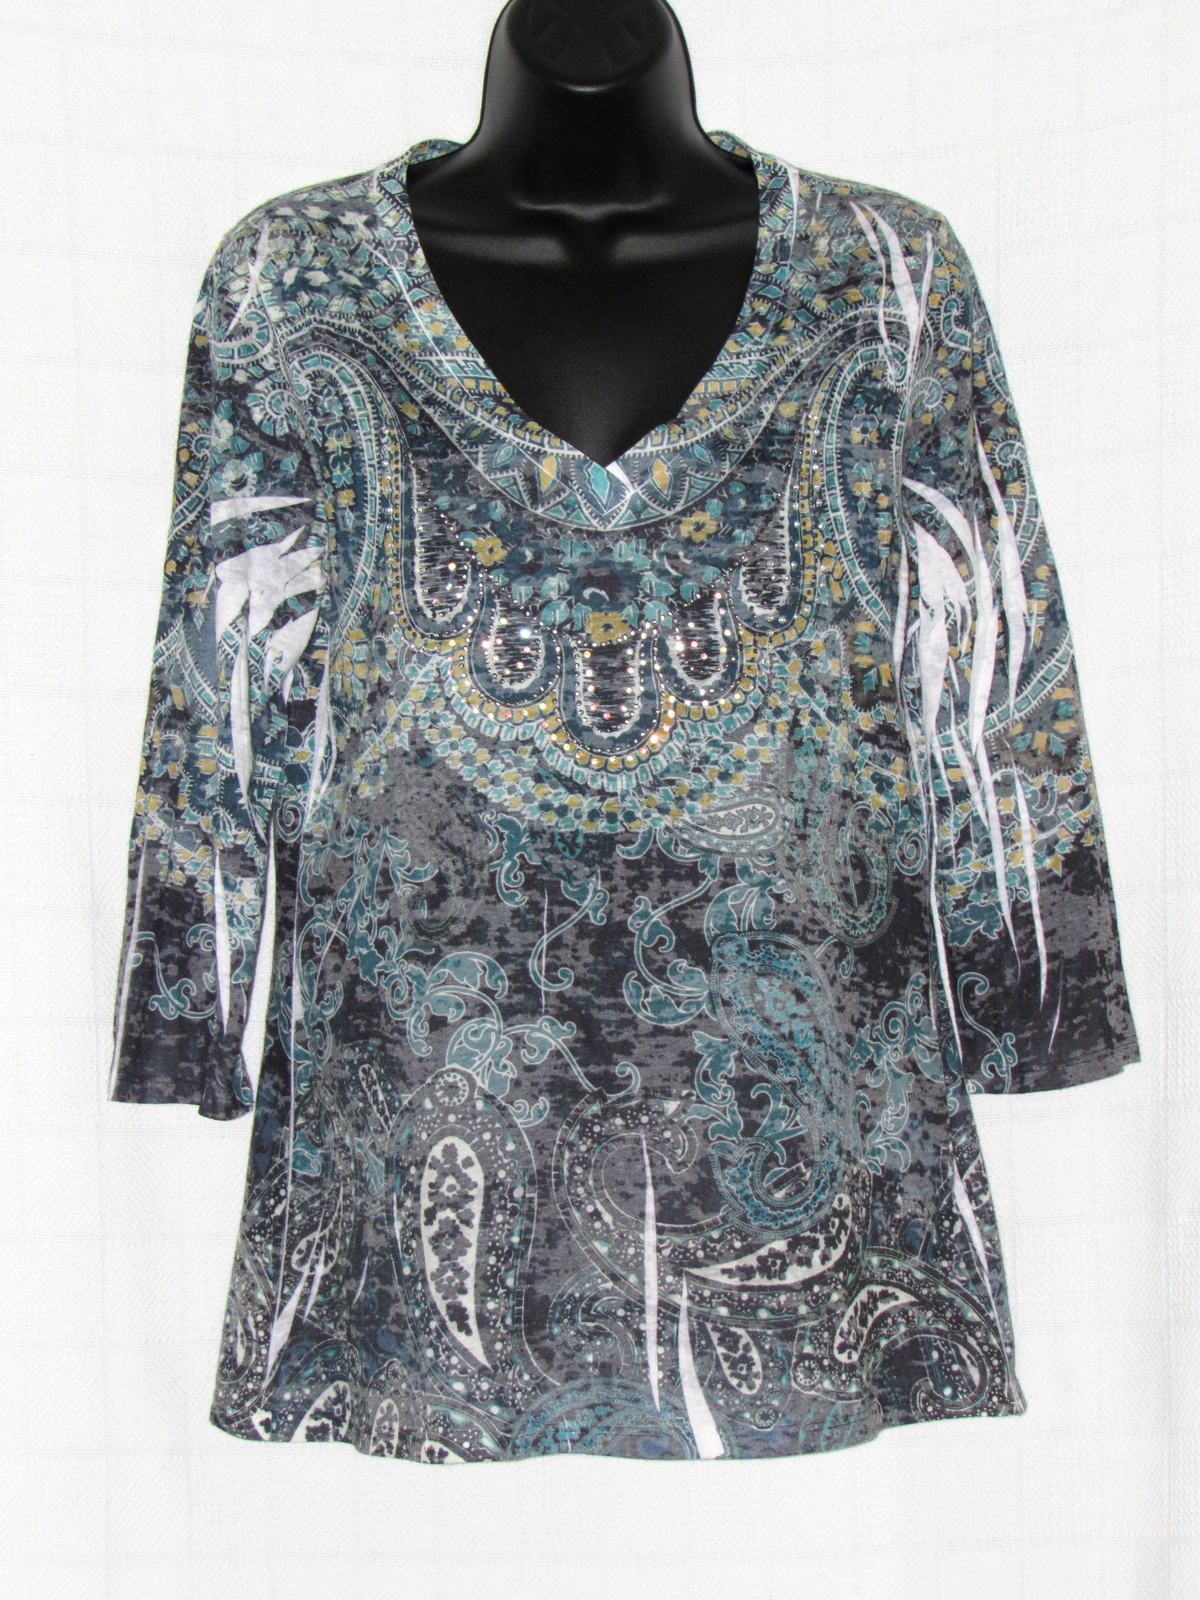 INC International Concept Sequin Embellished Paisley Print 3/4 Sleeve Top S: L